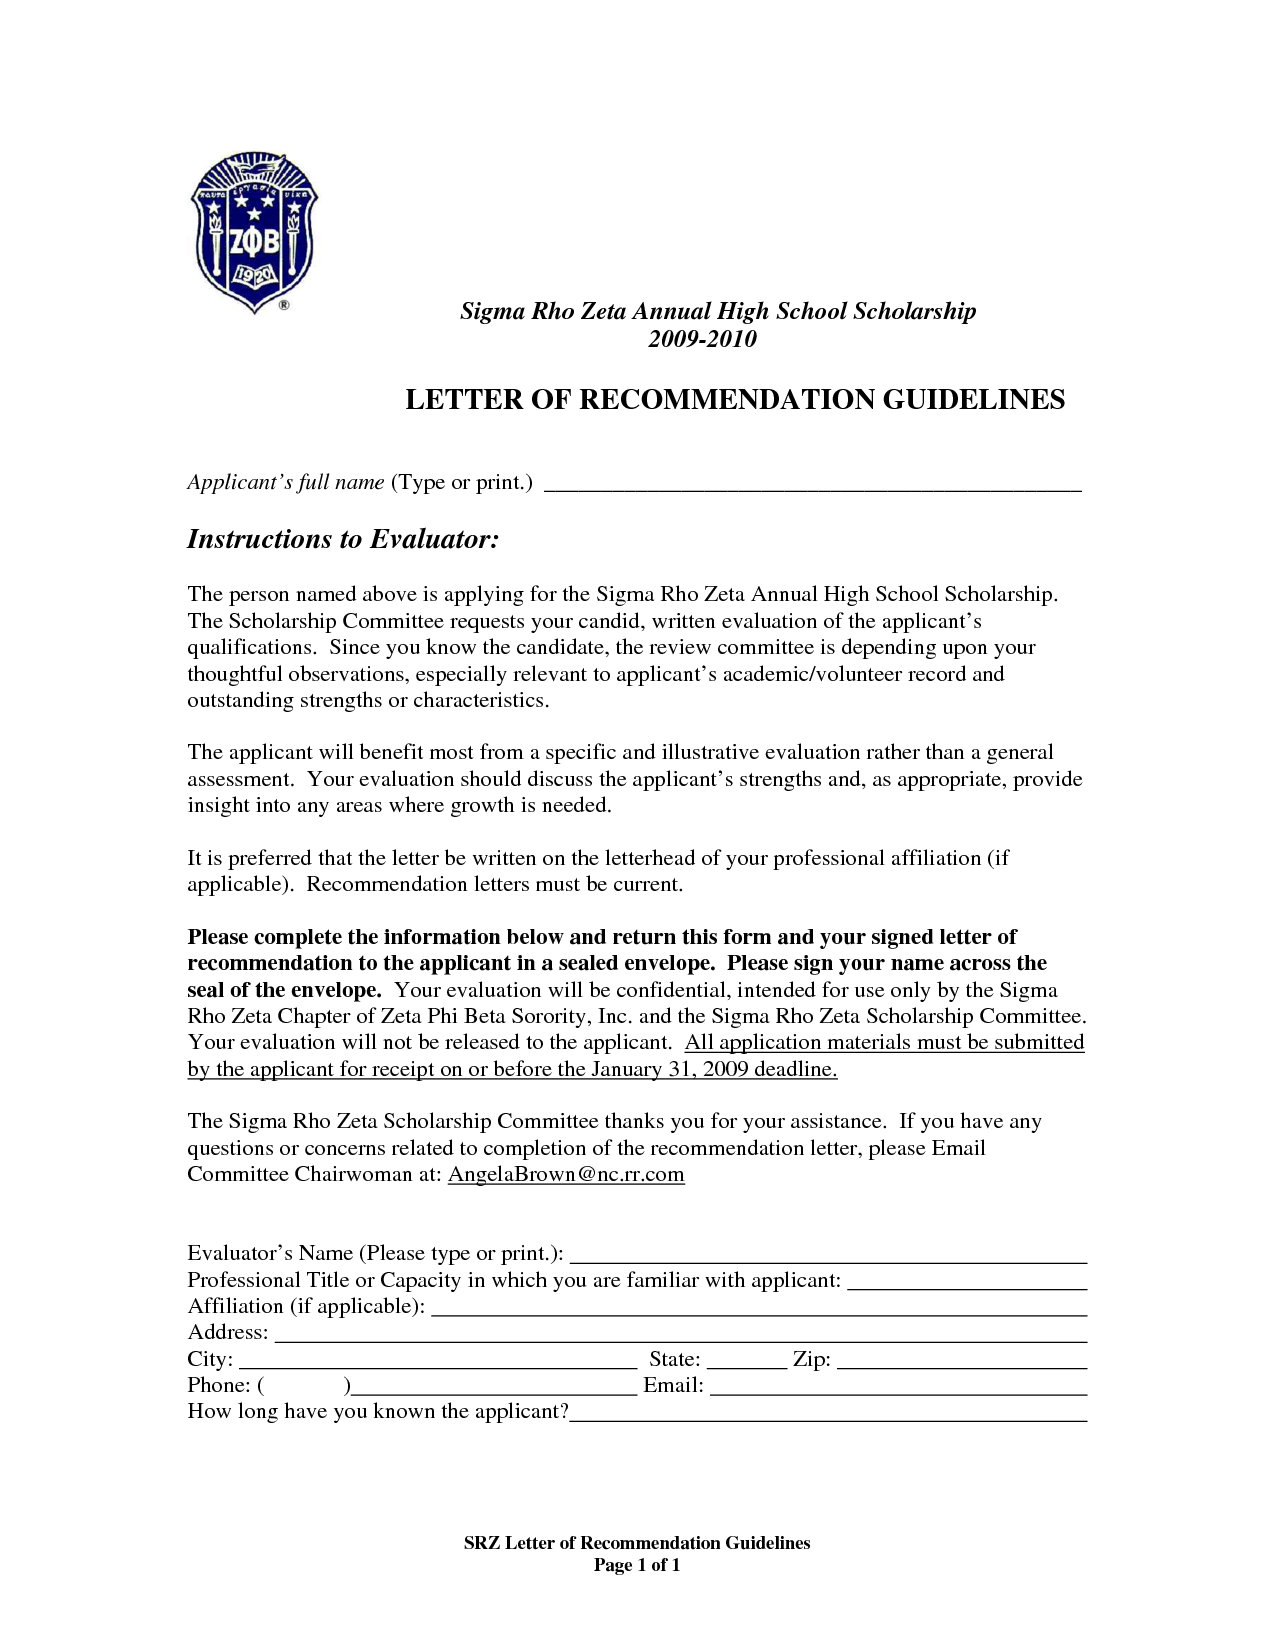 formats for letter of recommendation